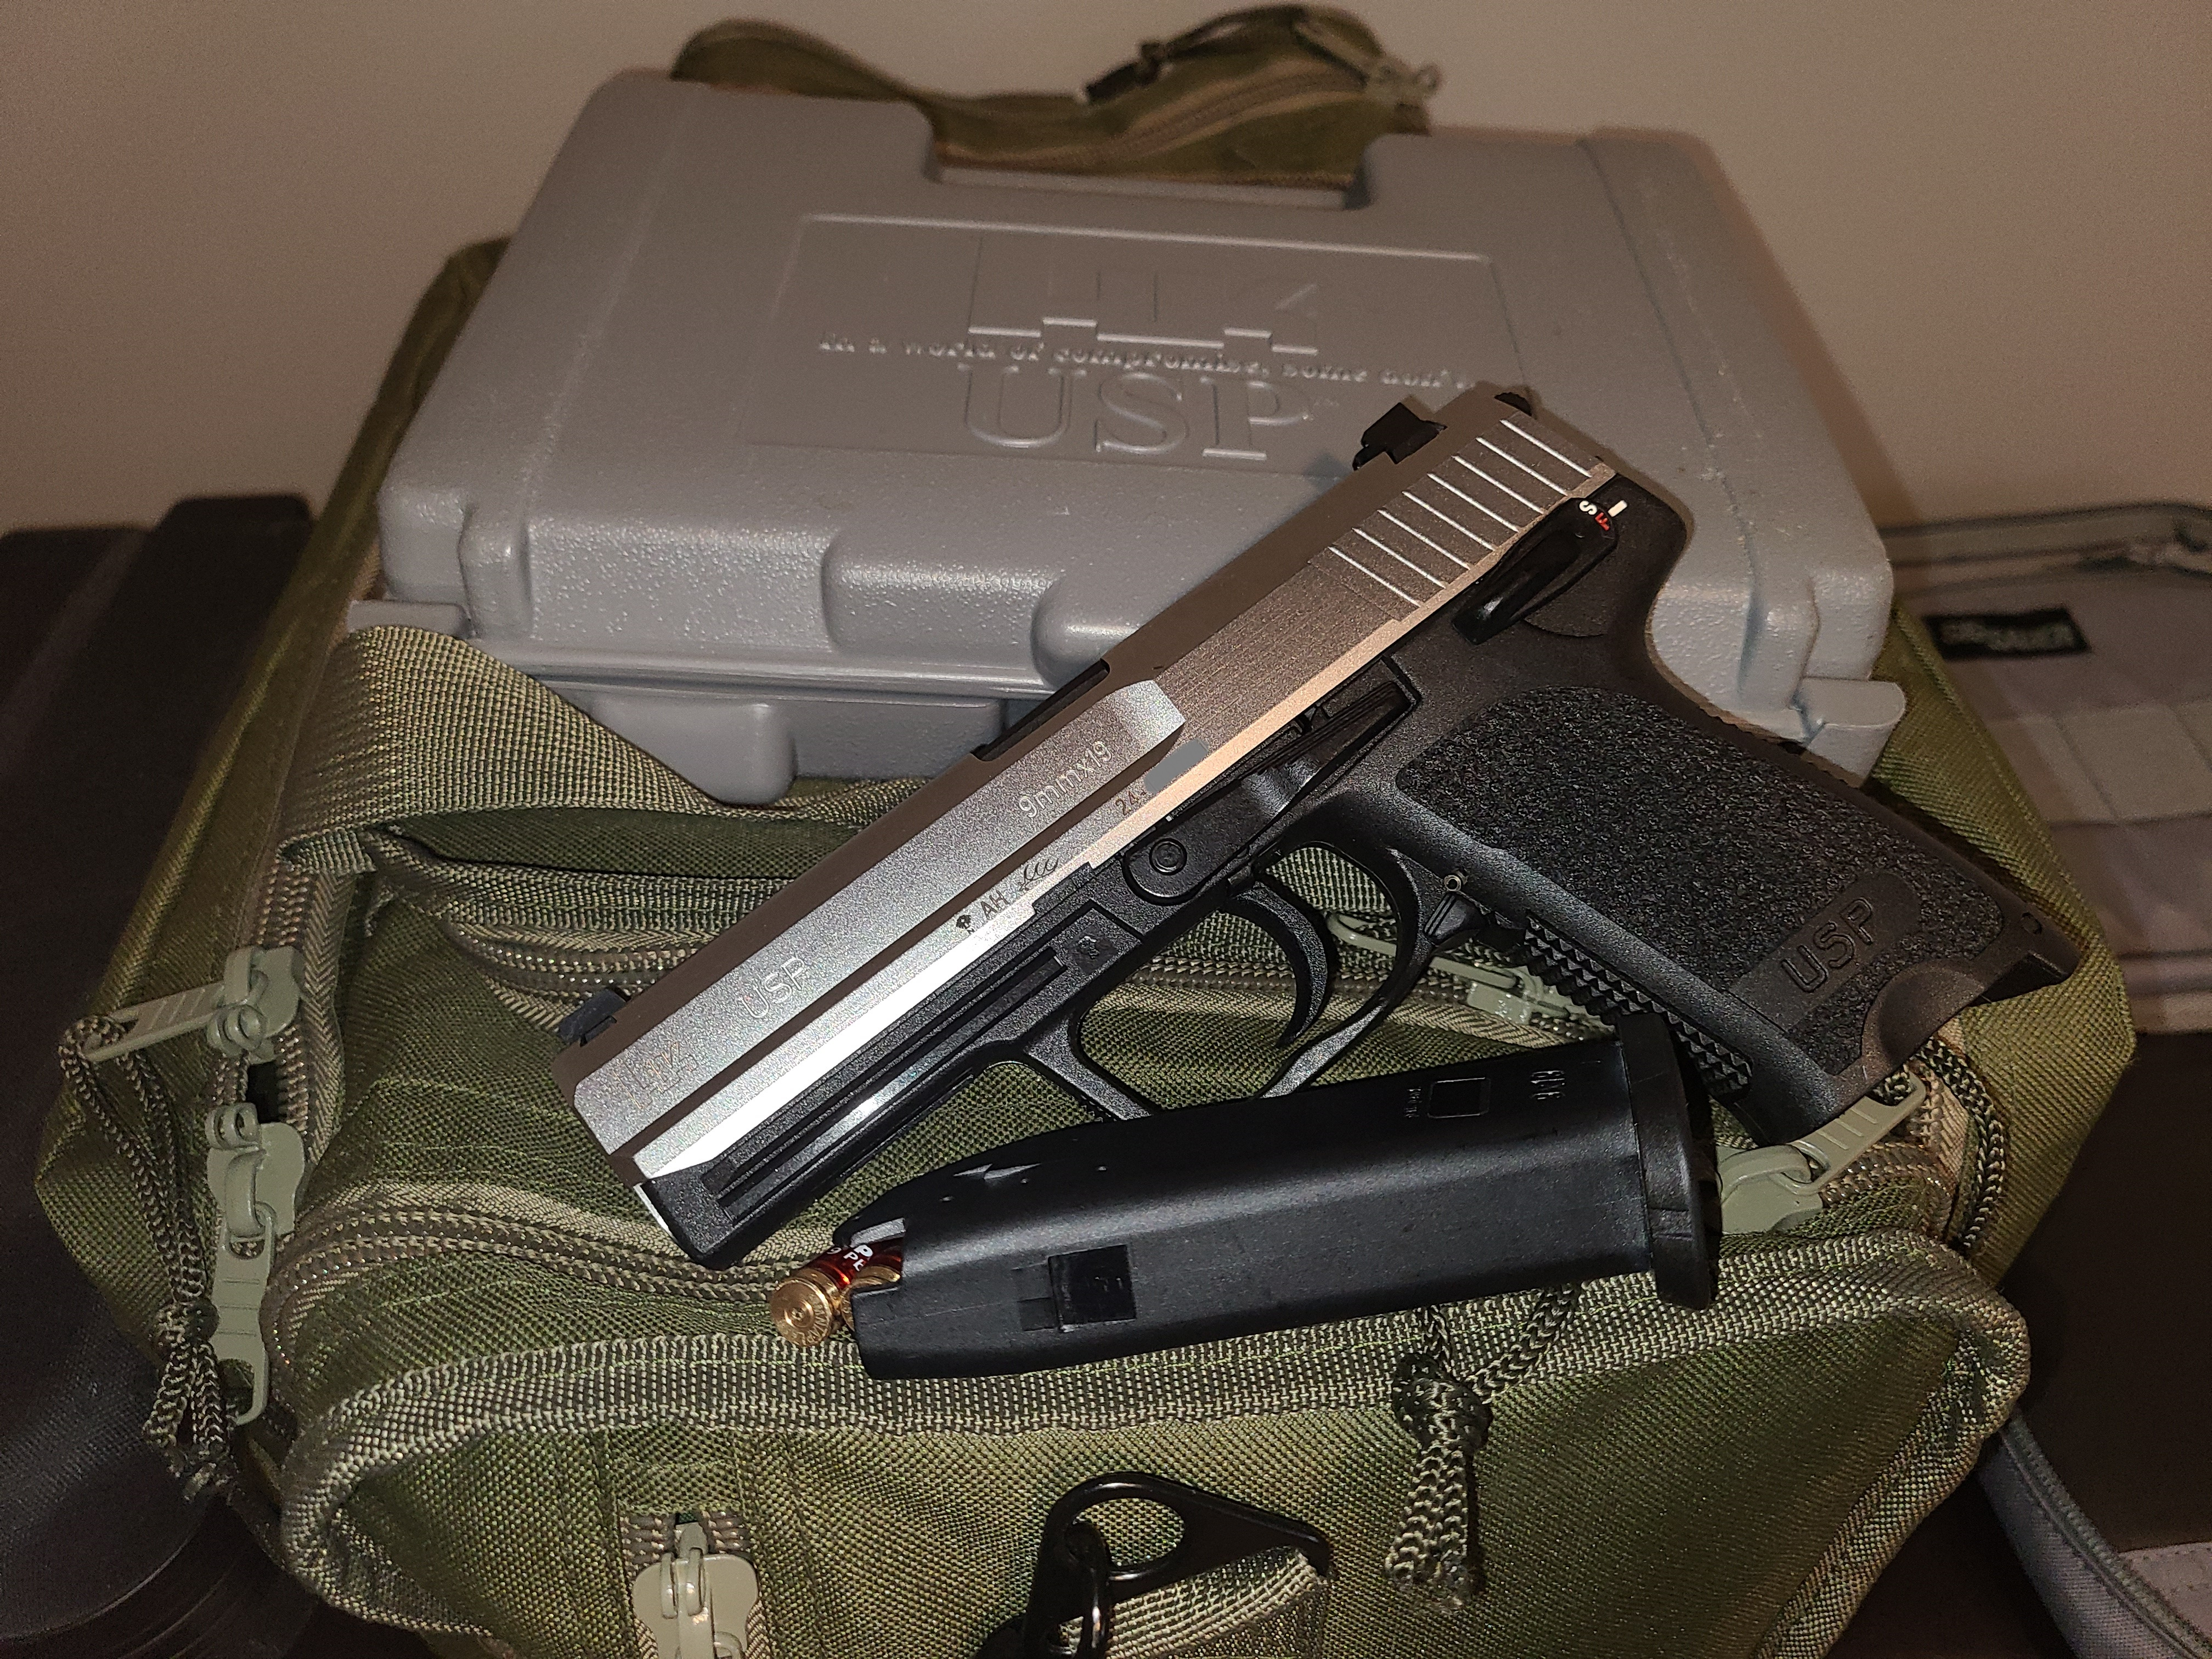 Sometimes you get lucky - USP 9 Stainless-01.jpg